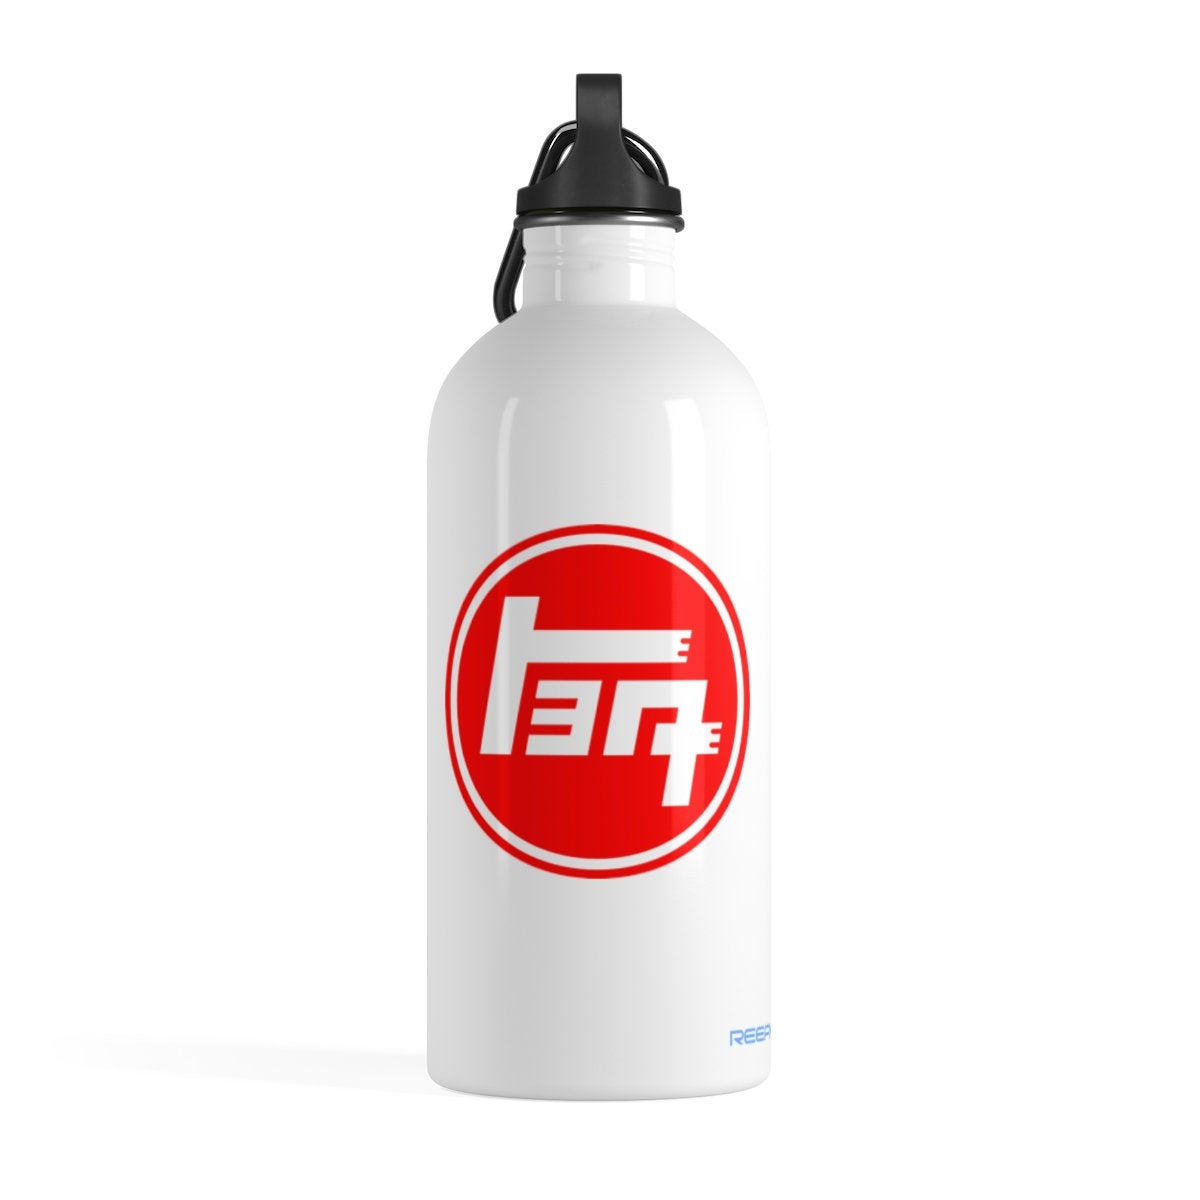 Teq Toyota Stainless Steel Water Bottle By Reefmonkey Fjcruiser Land Cruiser Gifts